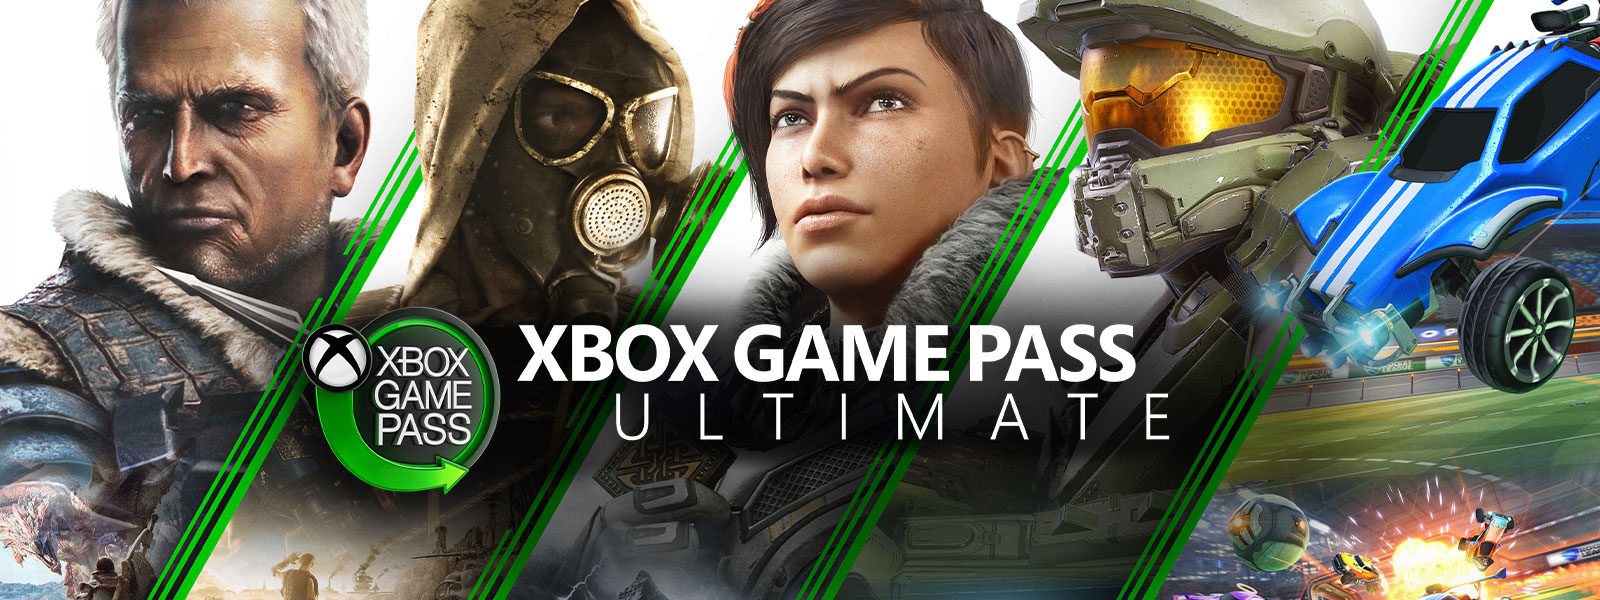 Xbox Game Pass Ultimate, een collage van Xbox-personages en voertuigen achter het Xbox Game Pass-logo